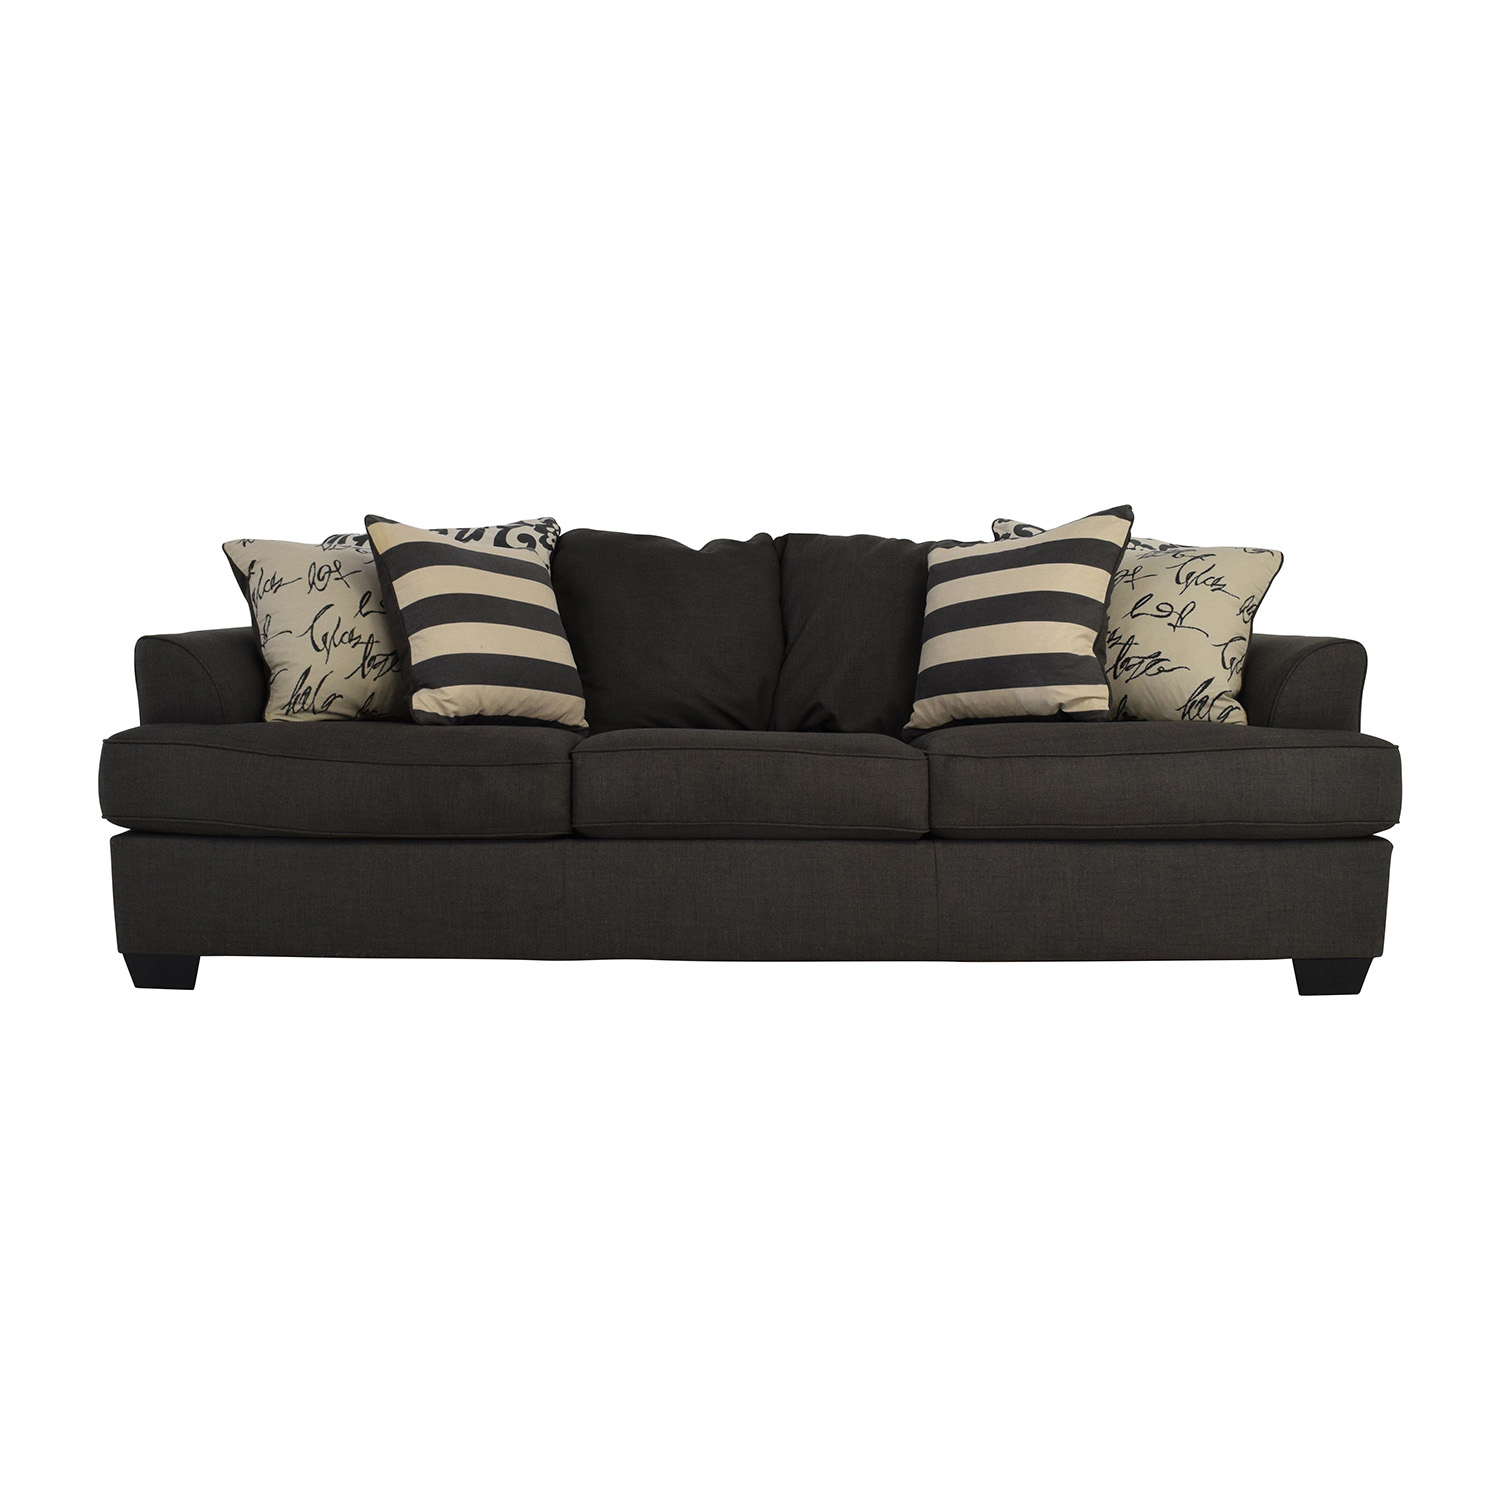 Attrayant Shop Ashley Furniture Gray Fabric Sofa Ashley Furniture ...